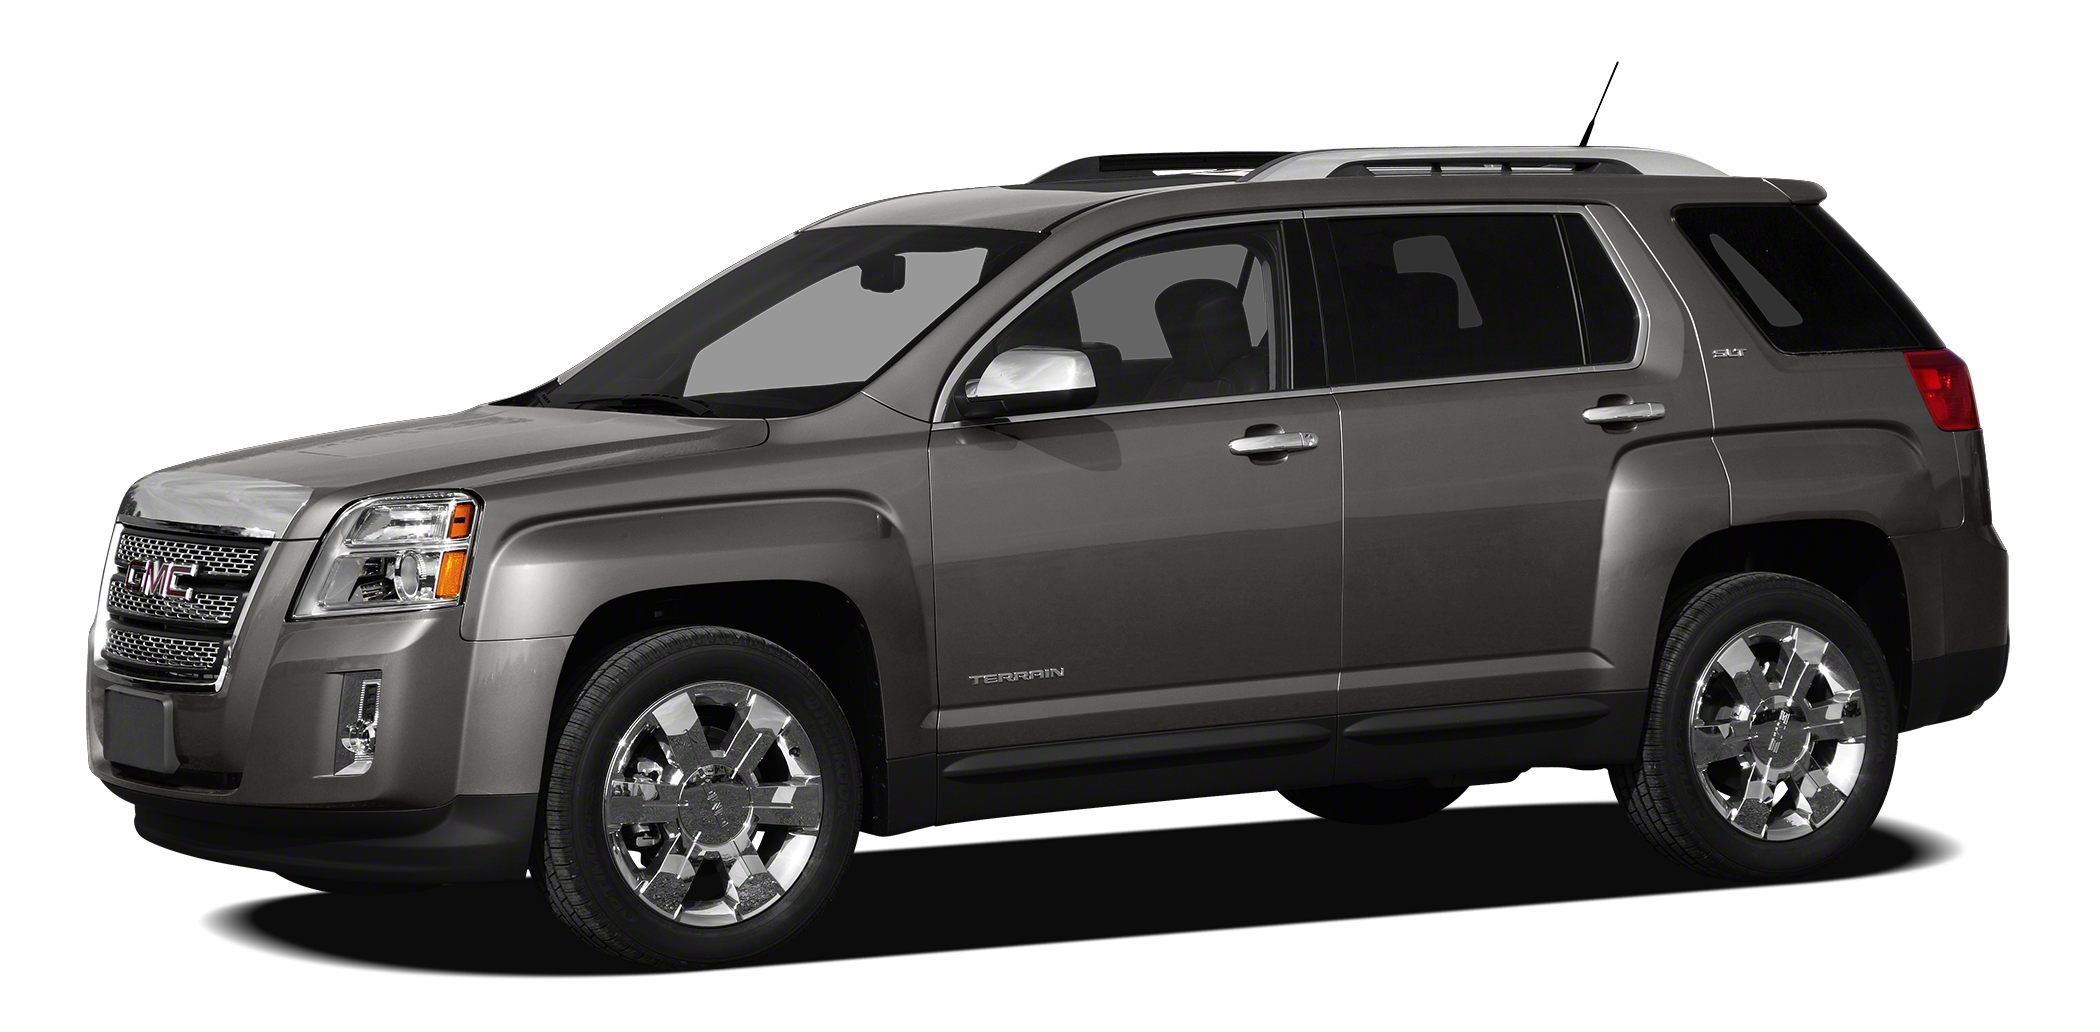 2012 GMC Terrain SLE-2 Vehicle Detailed Recent Oil Change and Passed Dealer Inspection Talk abo